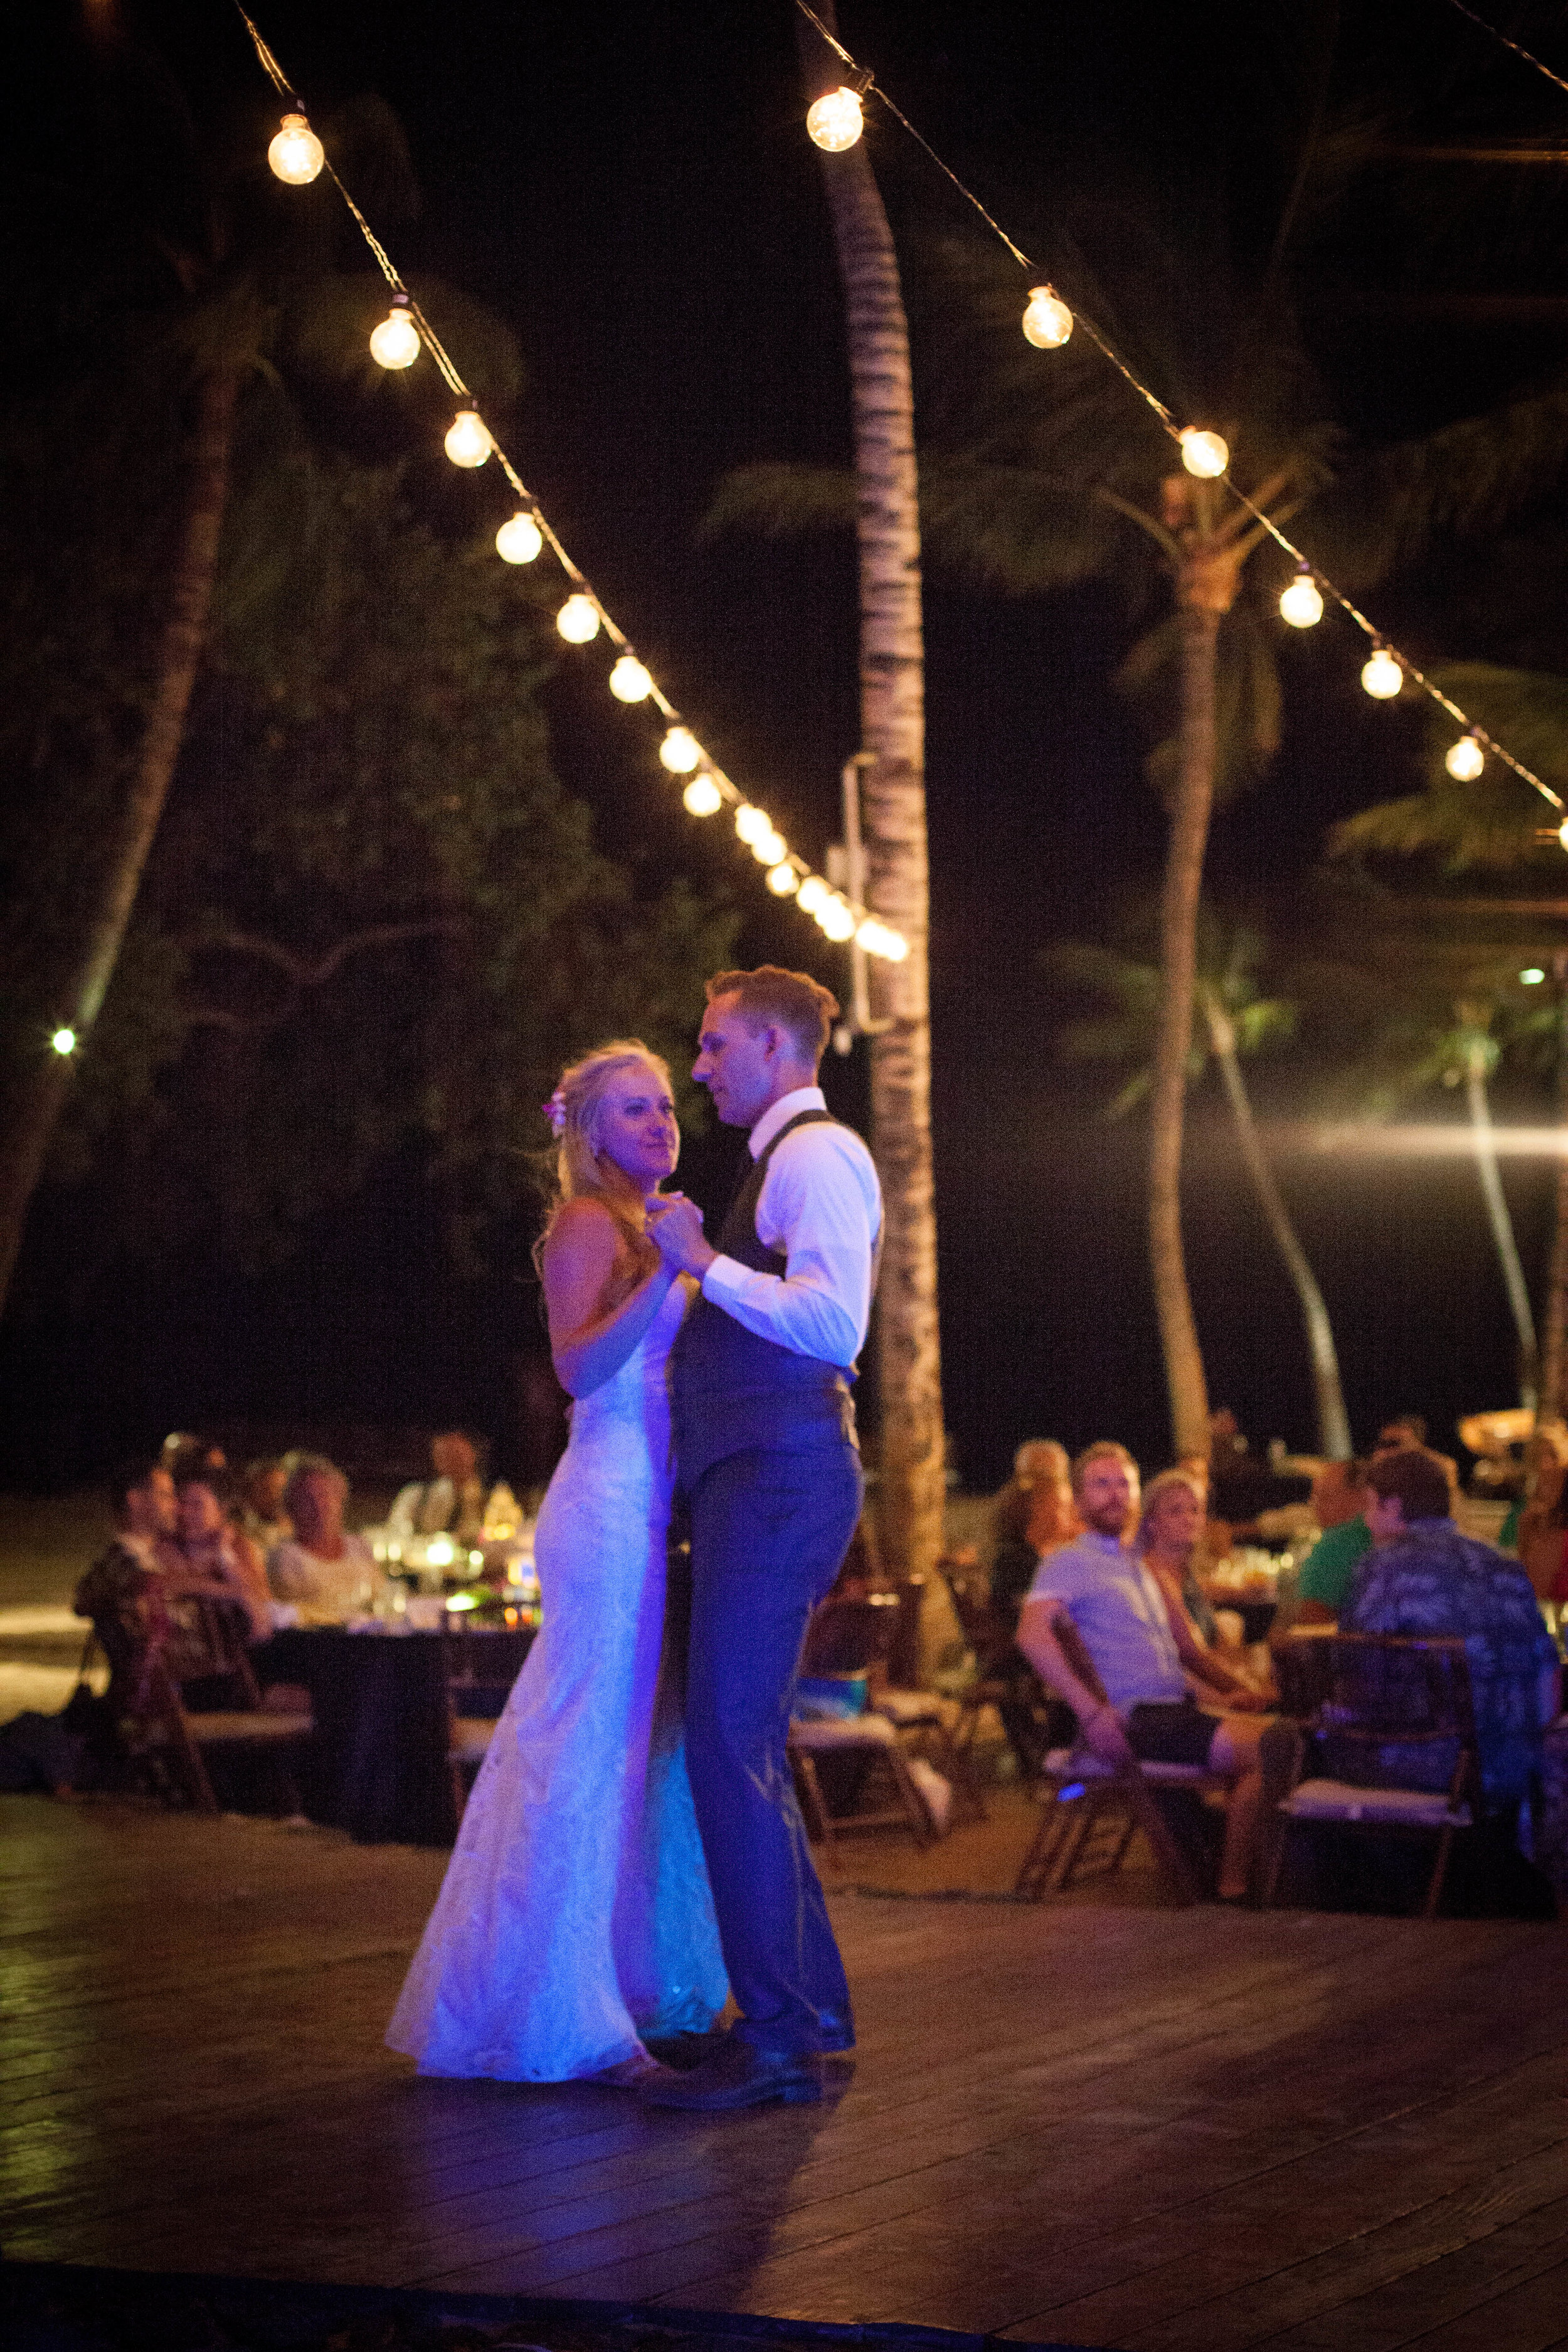 big island hawaii fairmont orchid beach wedding © kelilina photography 20170812210417-1.jpg